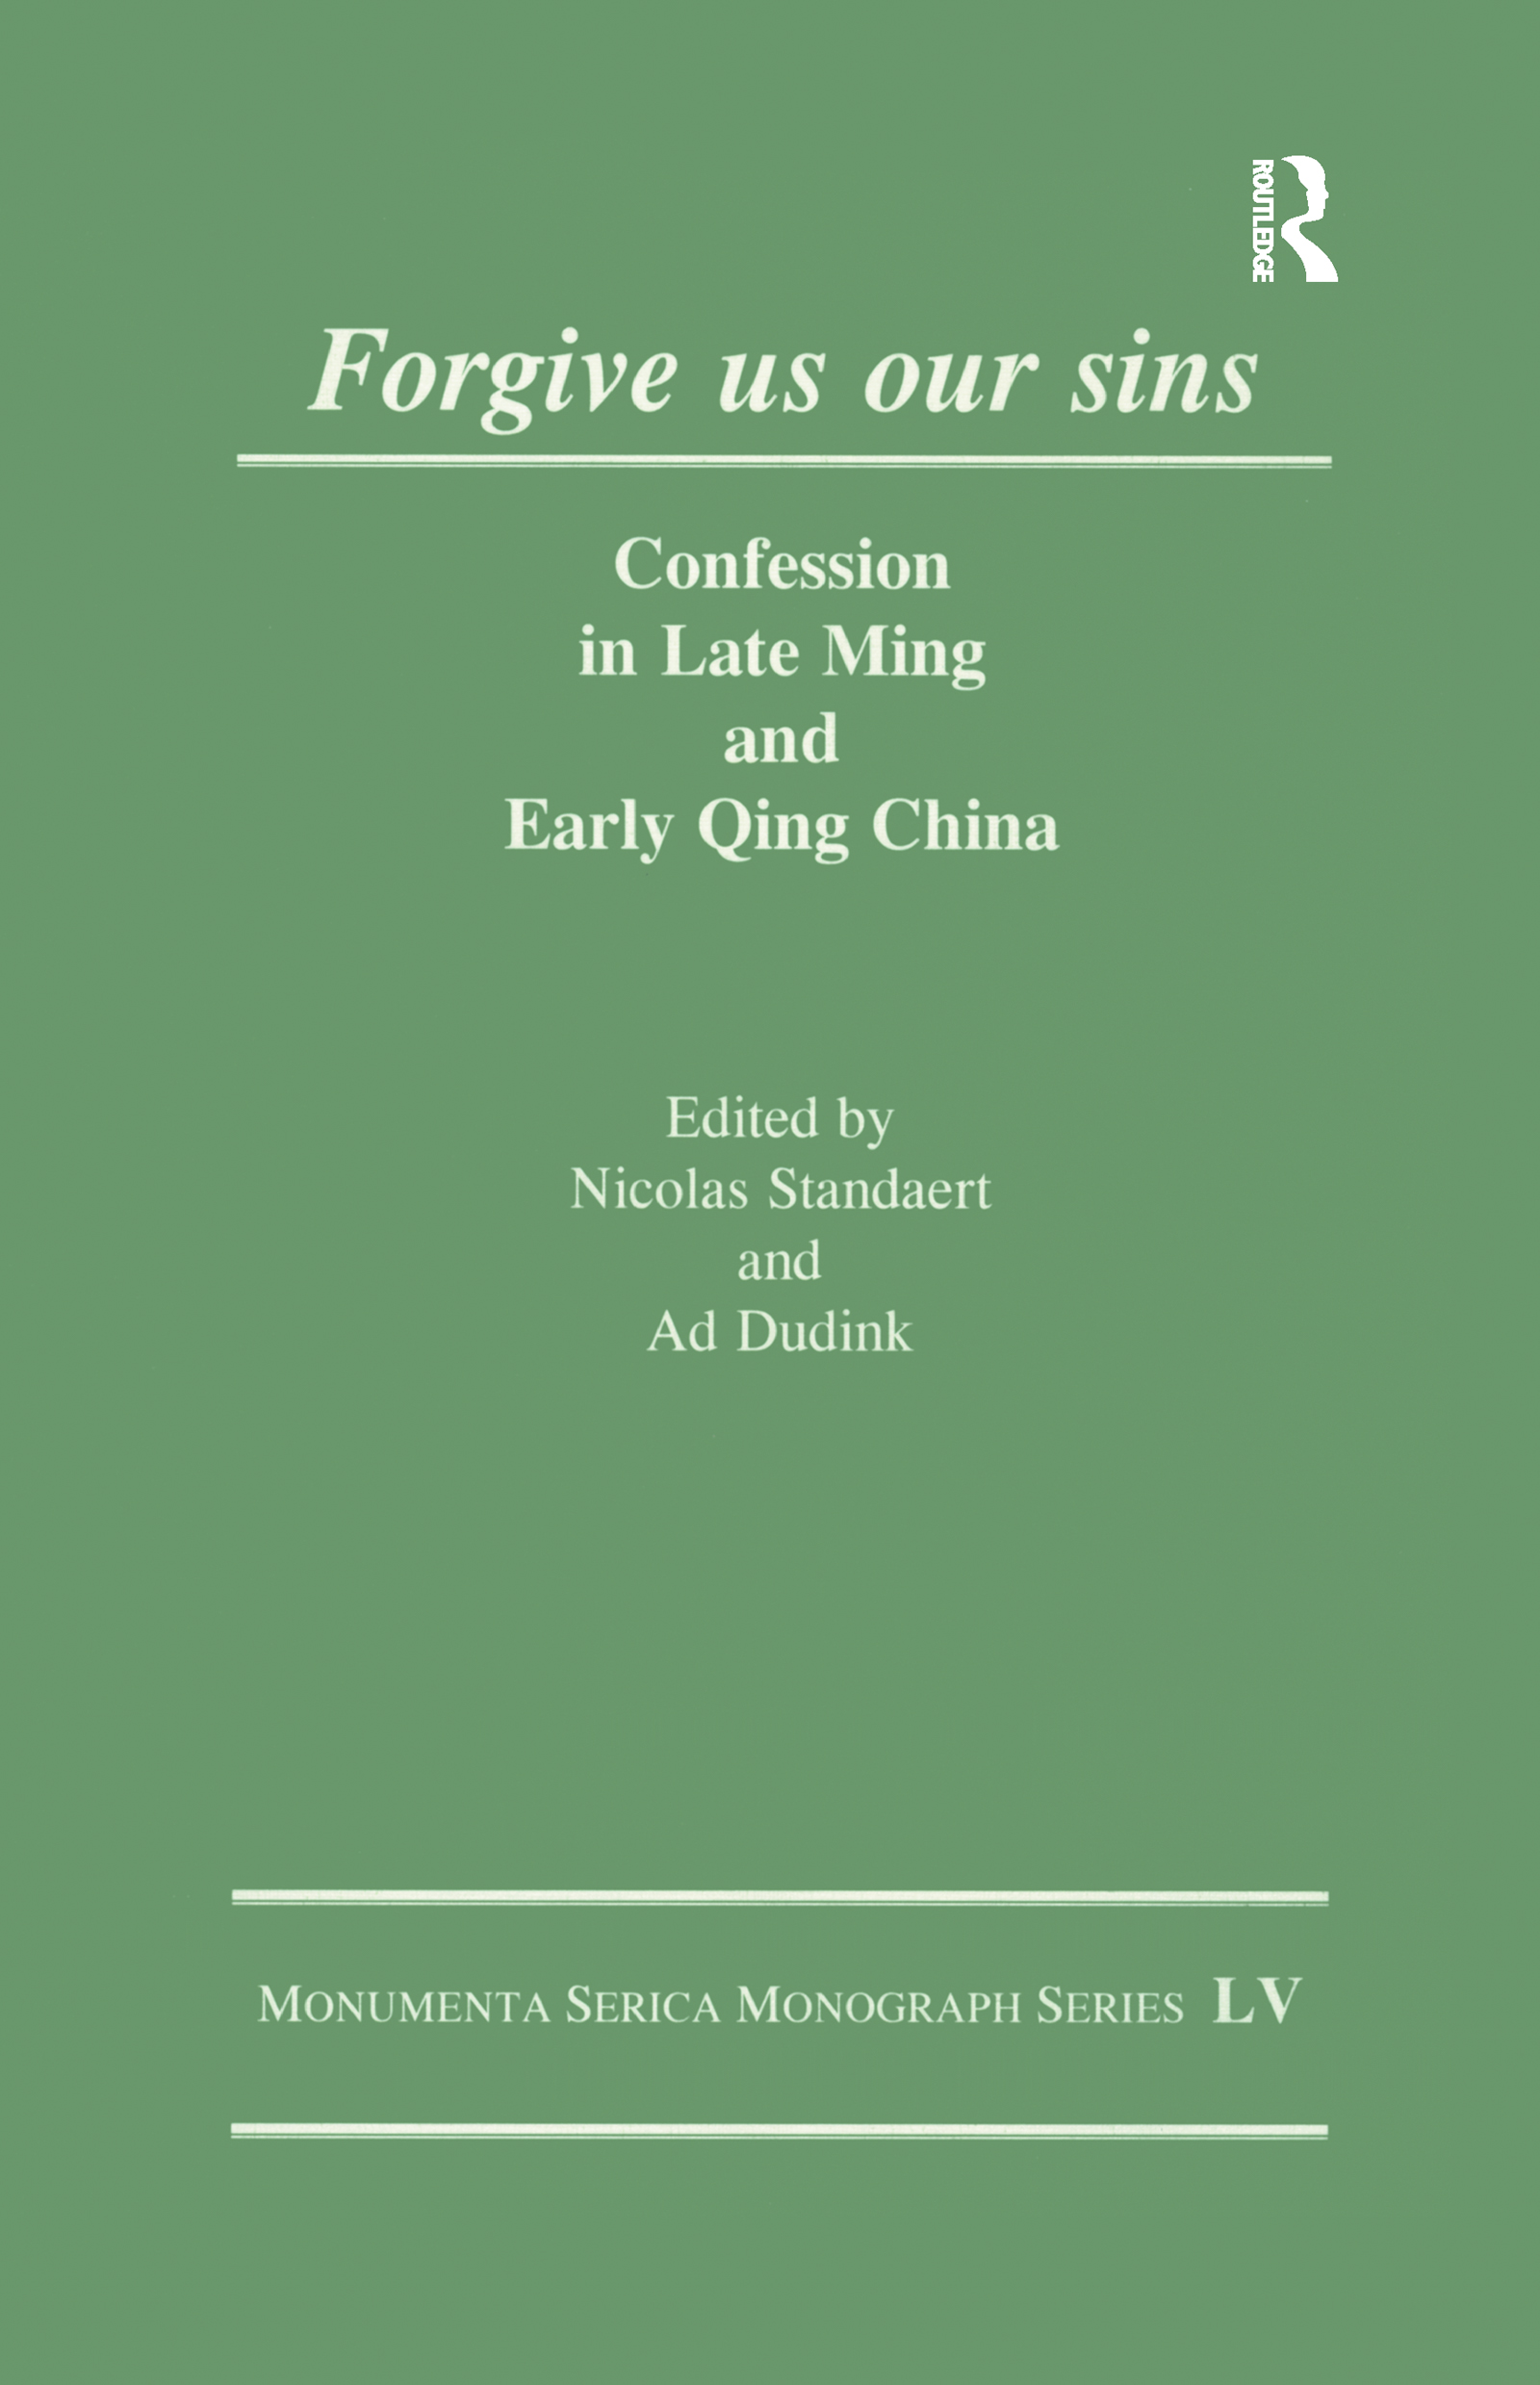 Forgive Us Our Sins: Confession in Late Ming and Early Qing China book cover